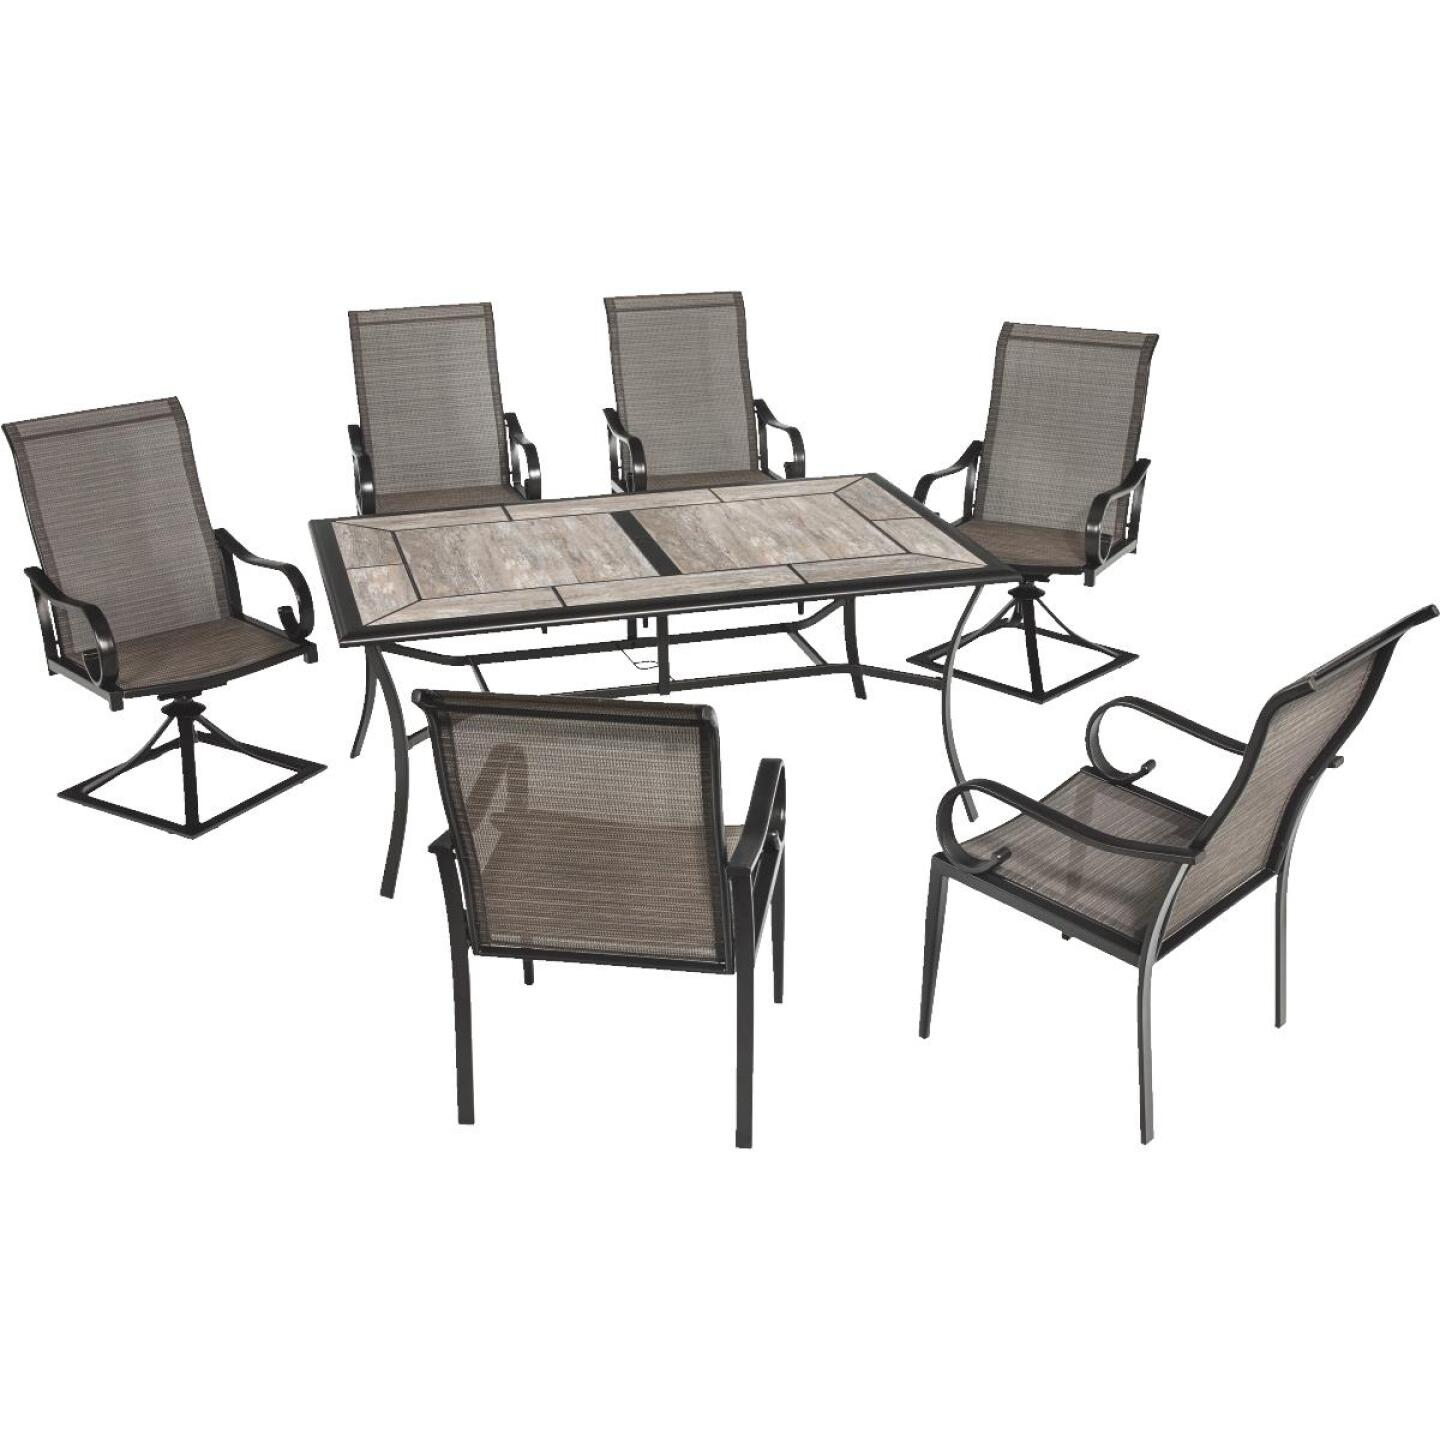 Outdoor Expressions Berkshire 7-Piece Dining Set Image 84